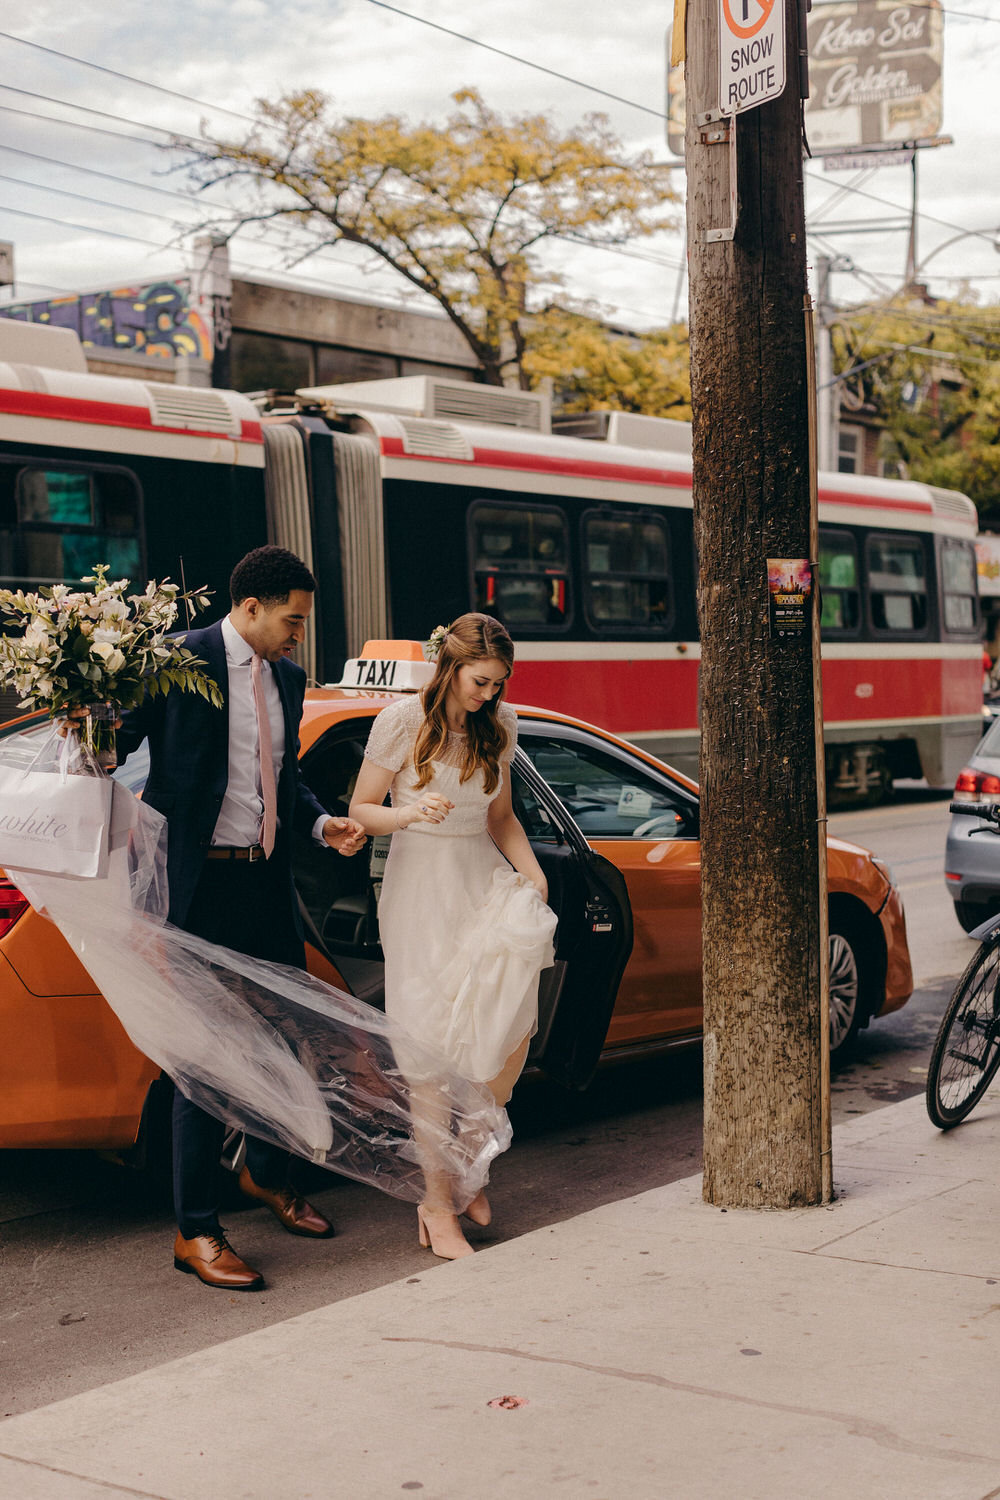 burroughes-building-wedding-toronto-christine-lim-photography-blush-and-bowties-033